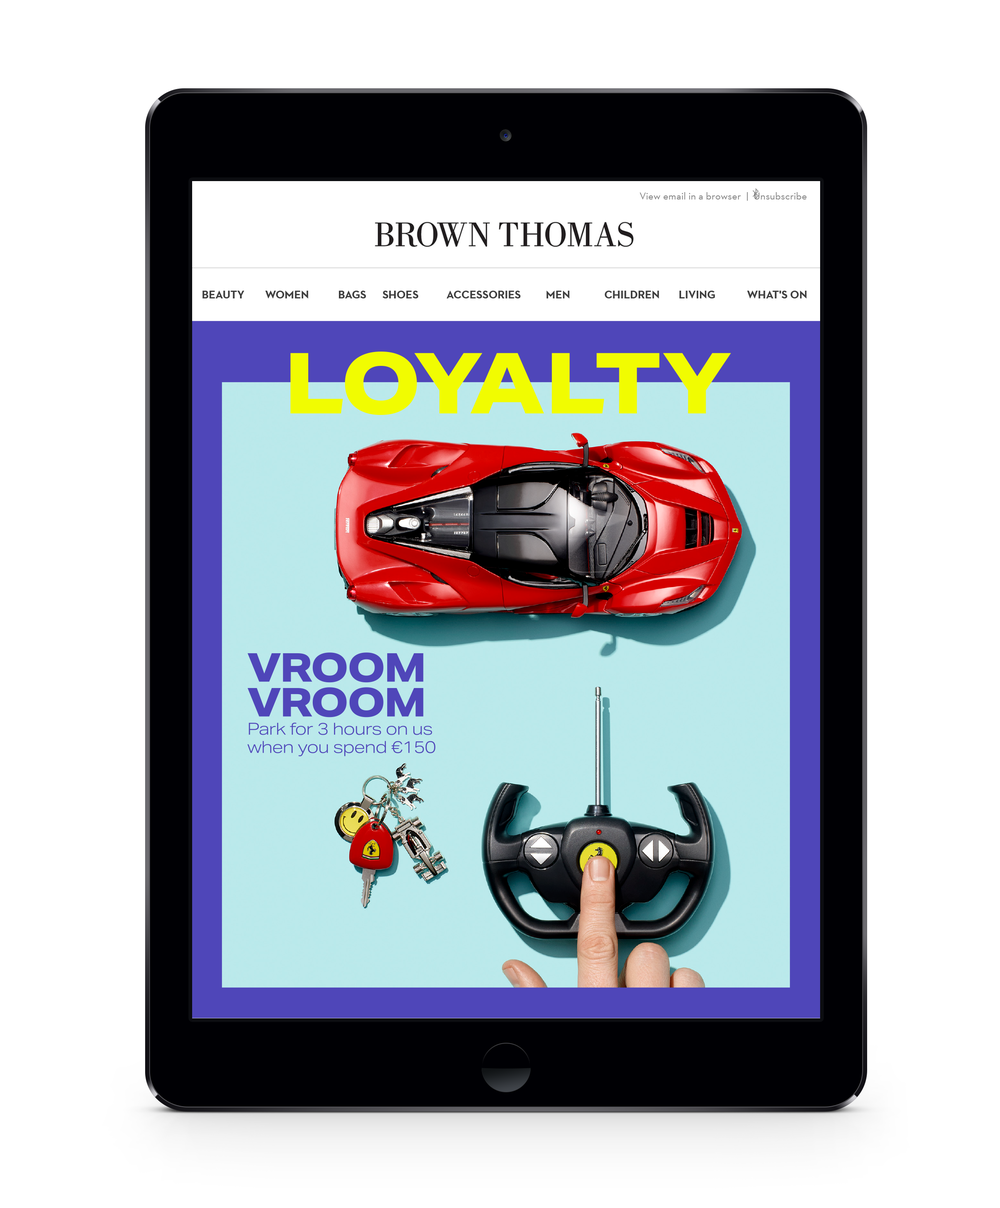 Together We Create Brown Thomas Loyalty_Email_B.png